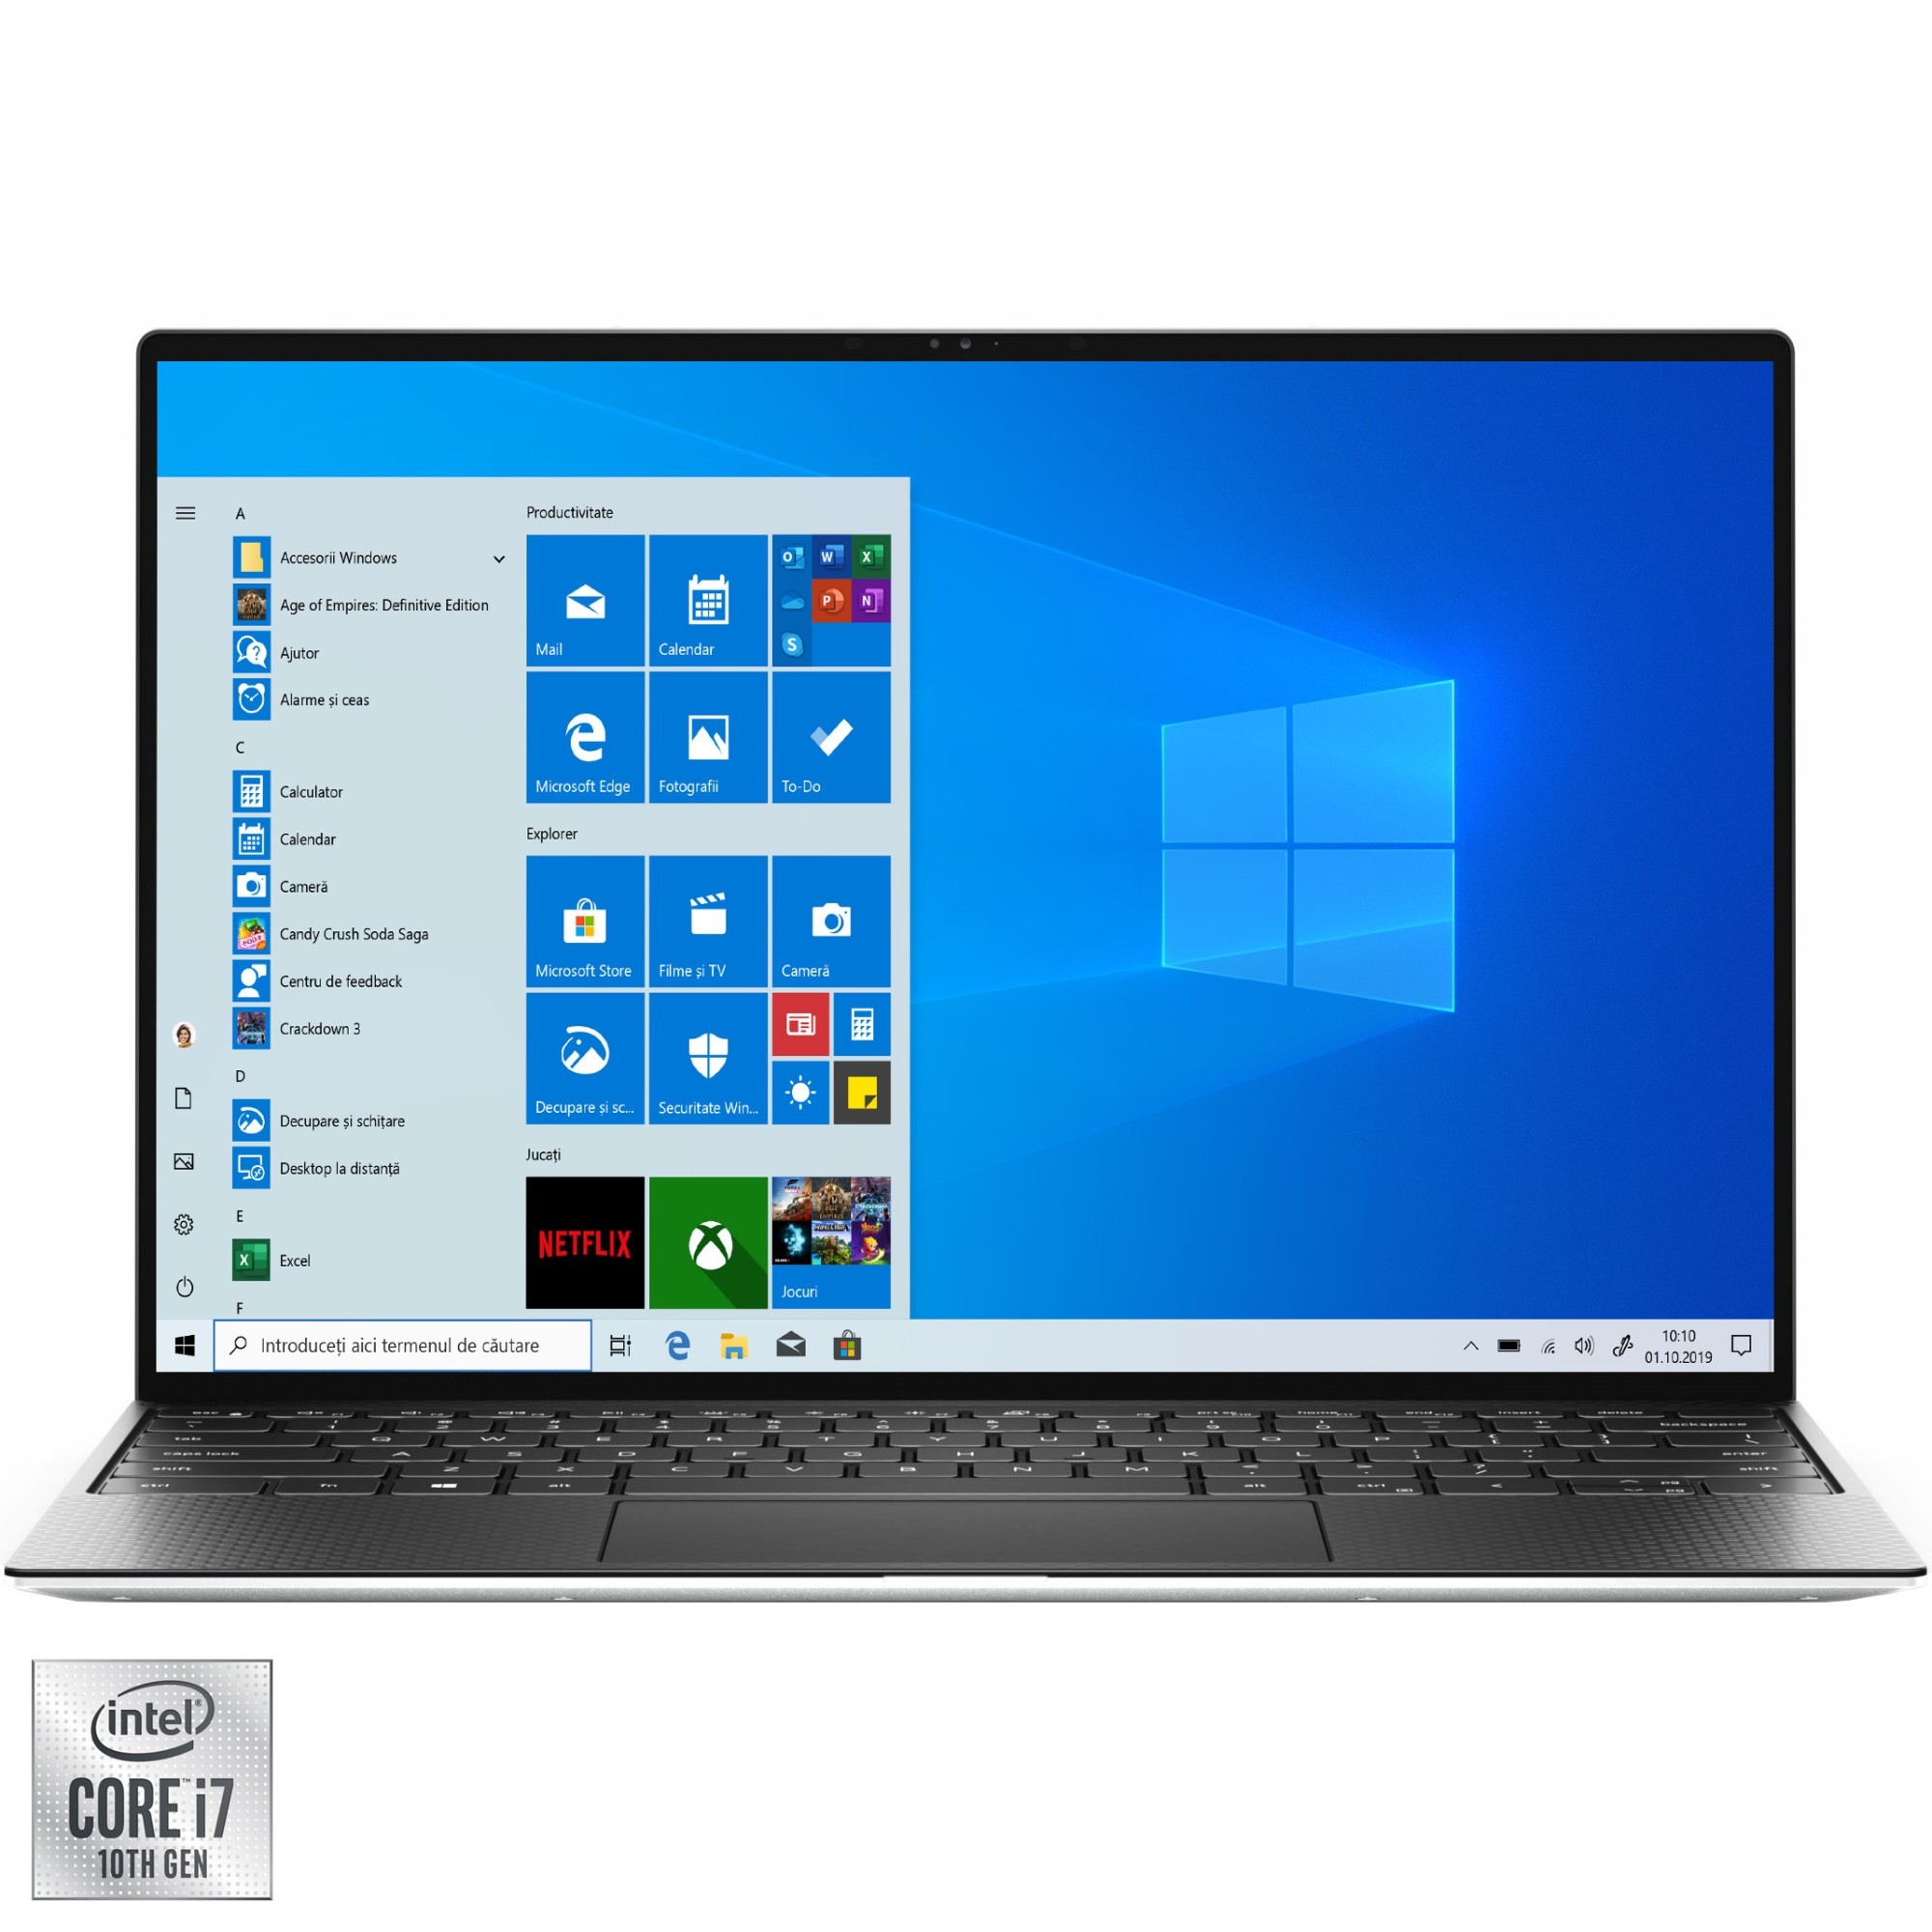 "Fotografie Laptop ultraportabil Dell XPS 13 9300 cu procesor Intel® Core™ i7-1065G7 pana la 3.90 GHz, 13.4"", Full HD+, Touch, 16GB, 1TB SSD, Intel Iris Plus Graphics, Windows 10 Pro, Platinum SIlver"